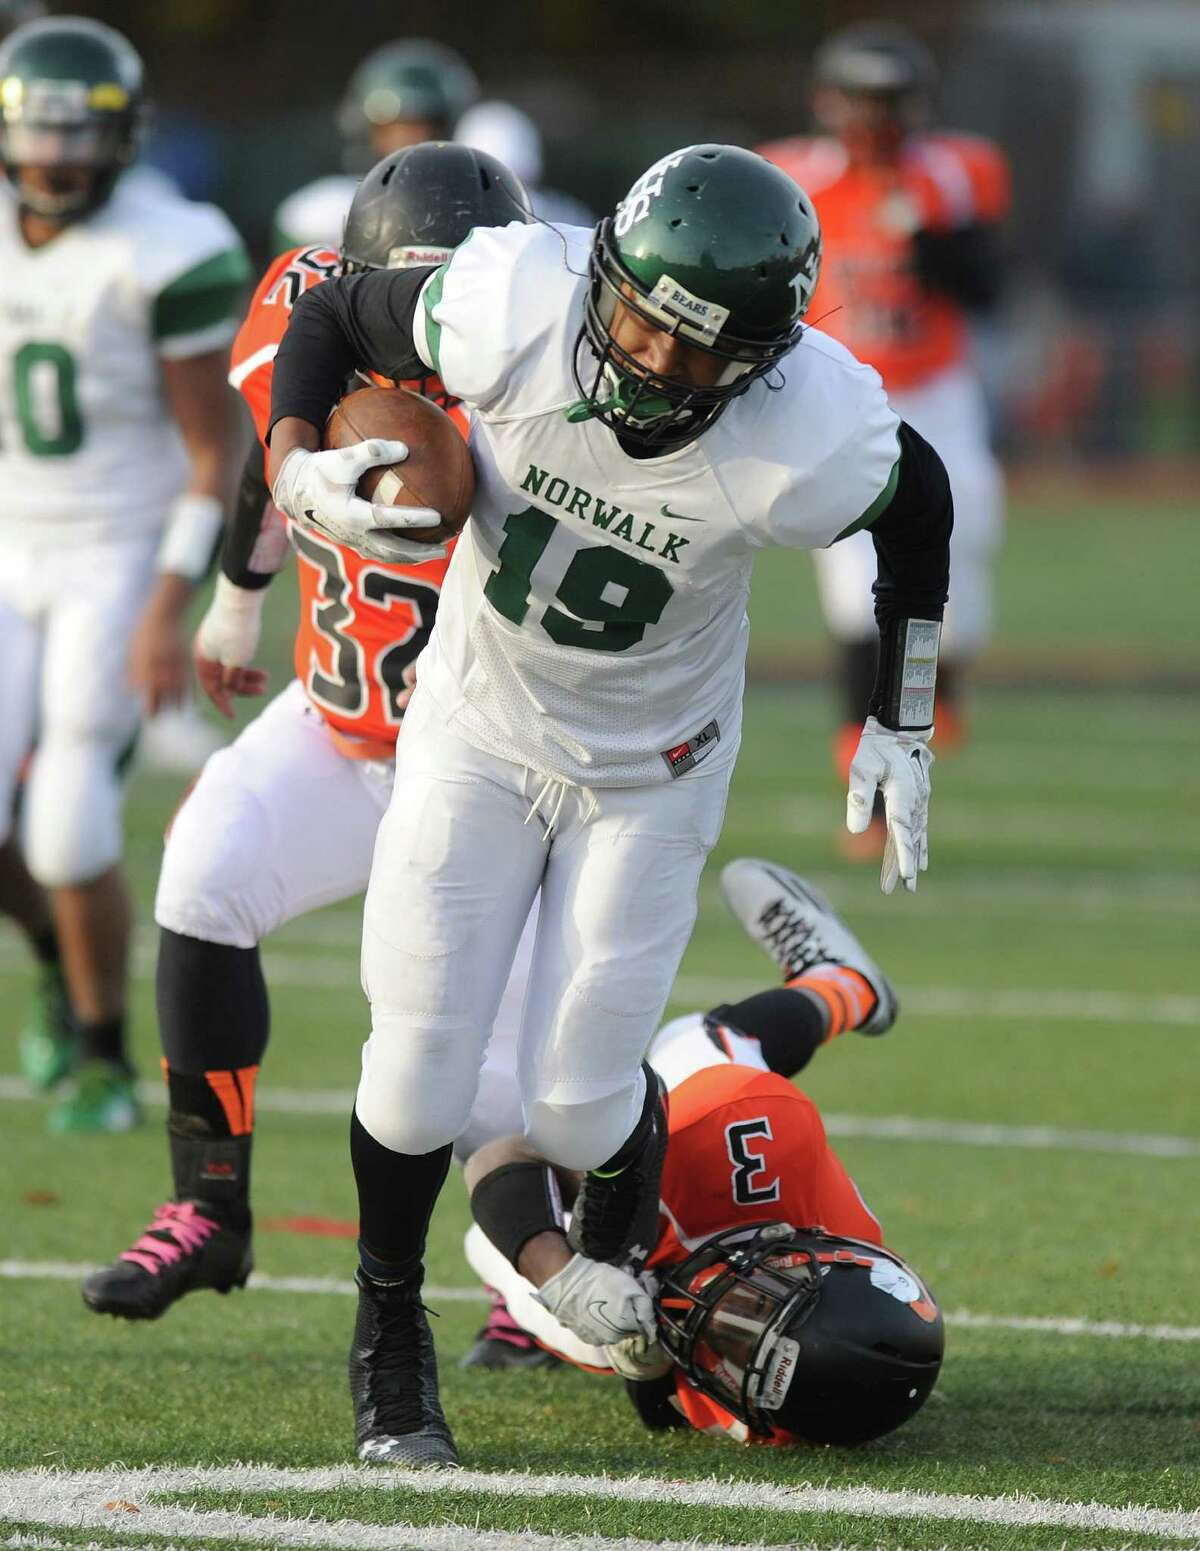 Norwalk's Izaiah Sanders escapes the grasp of Stamford's Tyree Smith during Saturday's football game on November 8, 2014, at Stamford High School.